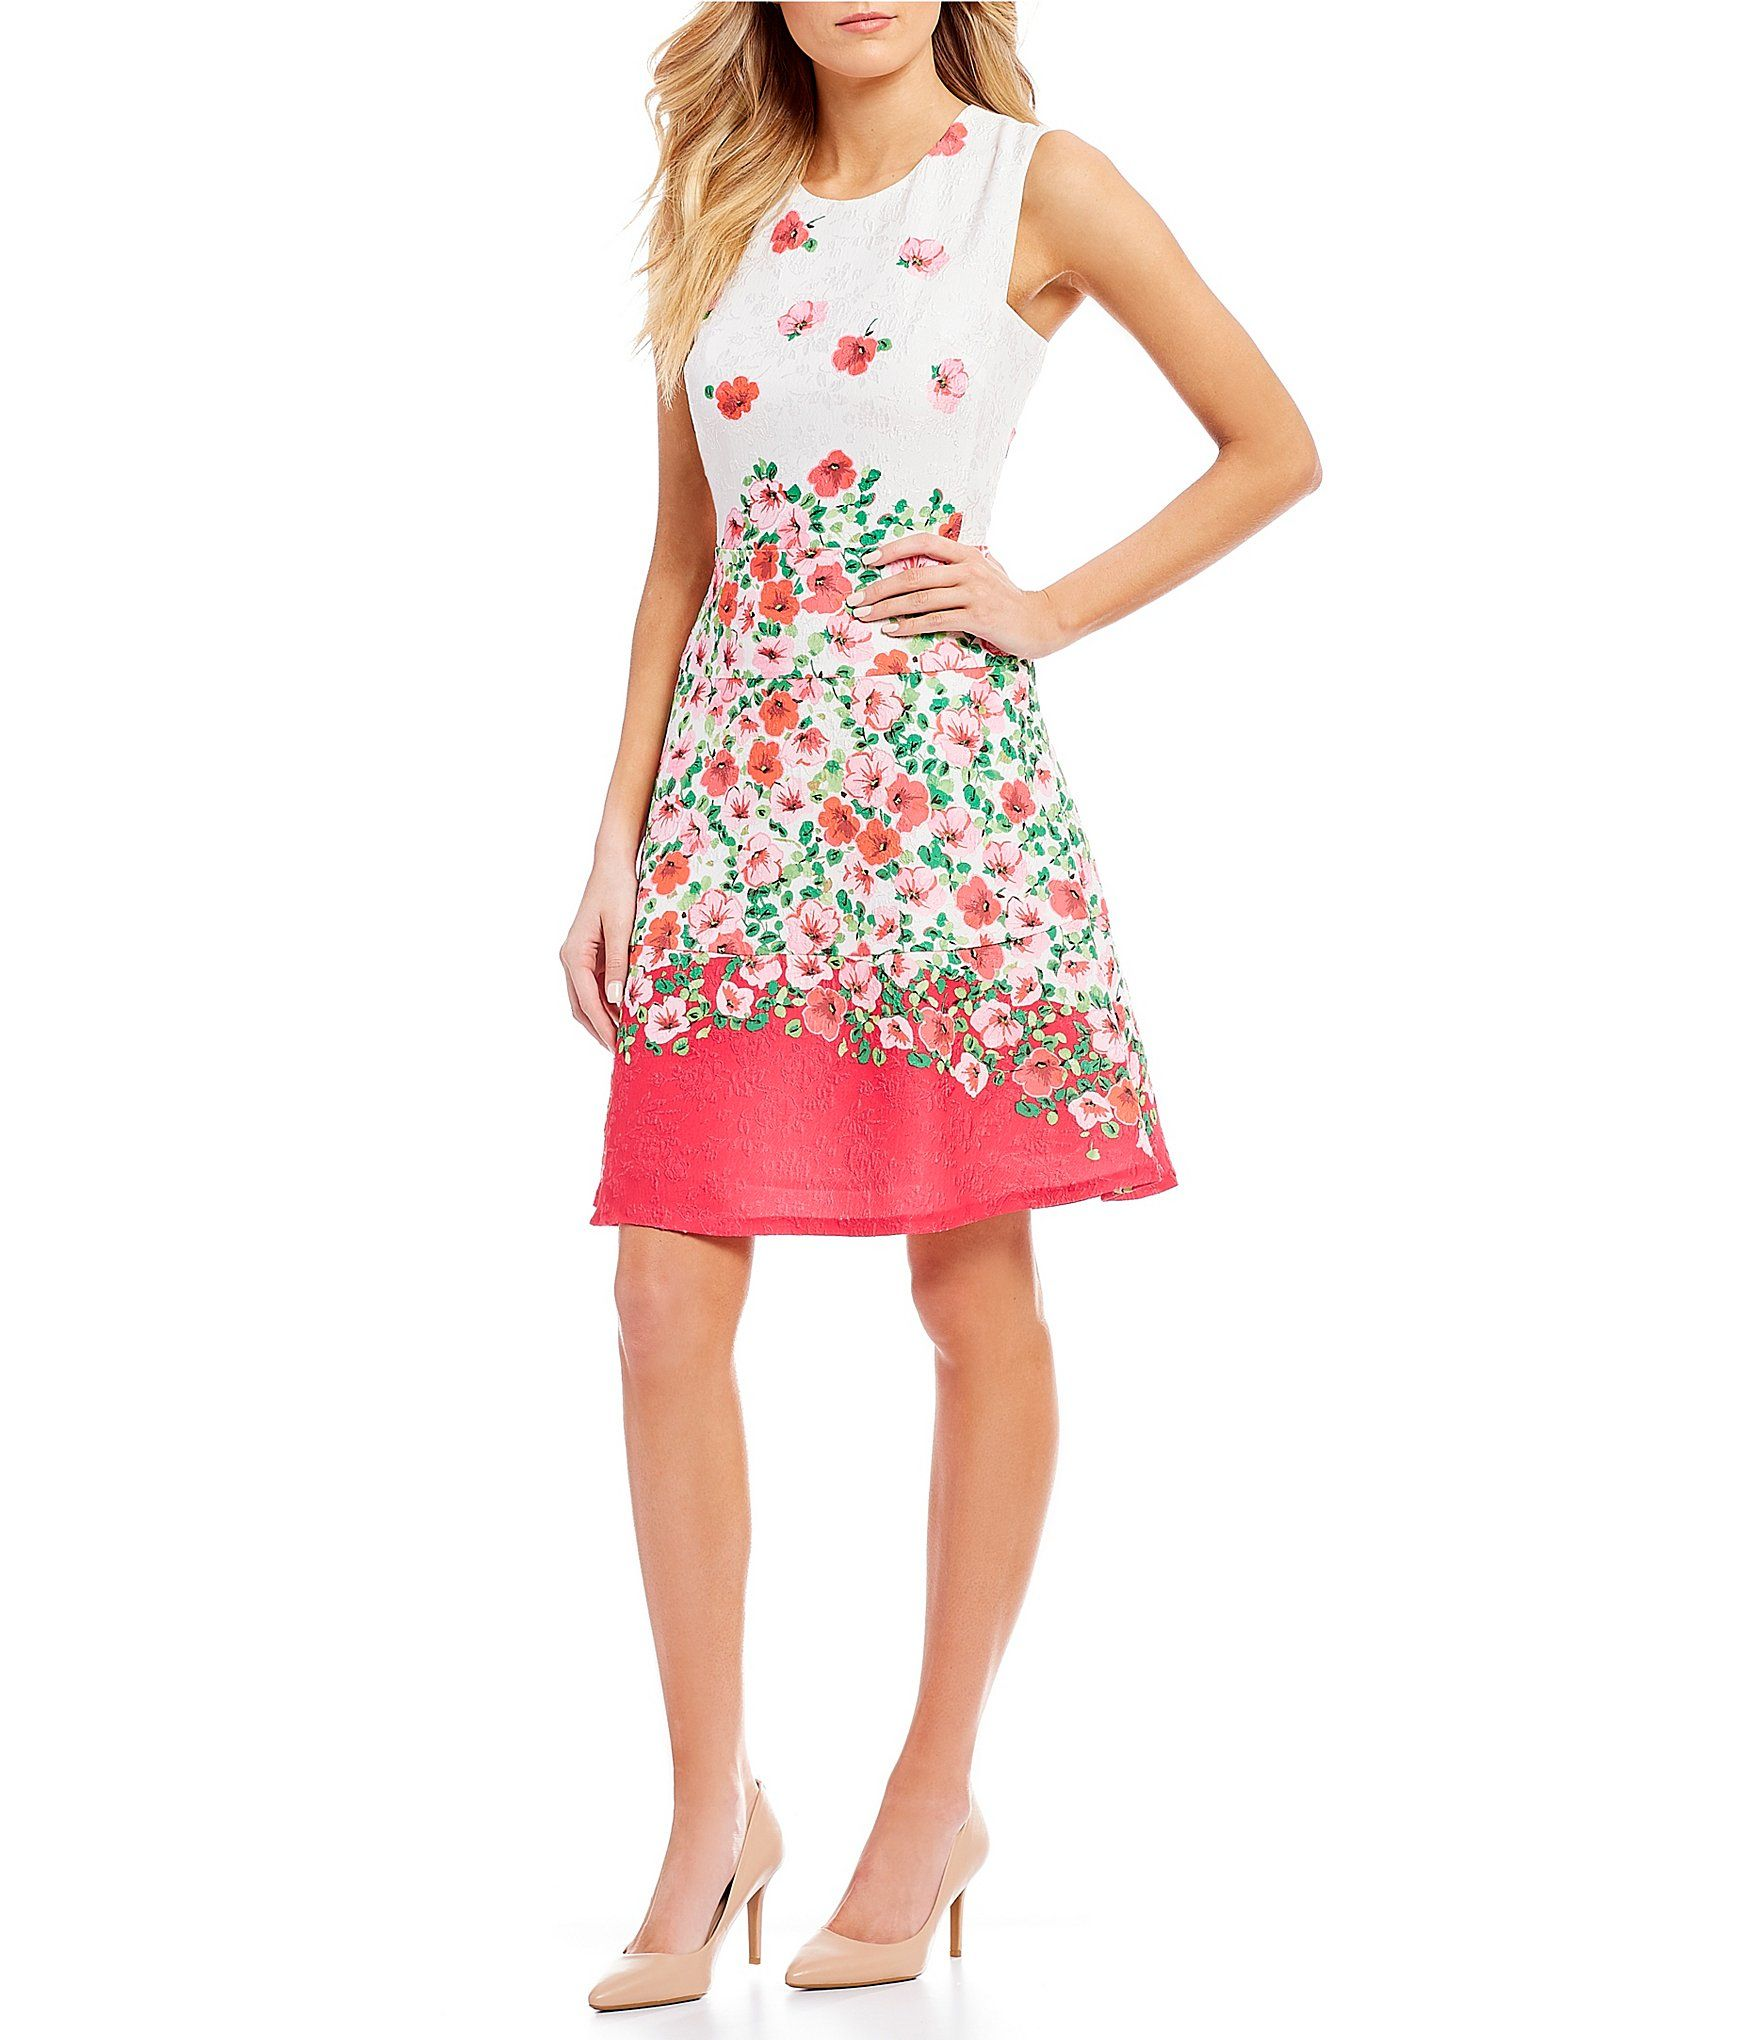 82153f0f5a2 Shop for KARL LAGERFELD PARIS Border Floral Printed Sleeveless Swing Dress  at Dillards.com. Visit Dillards.com to find clothing